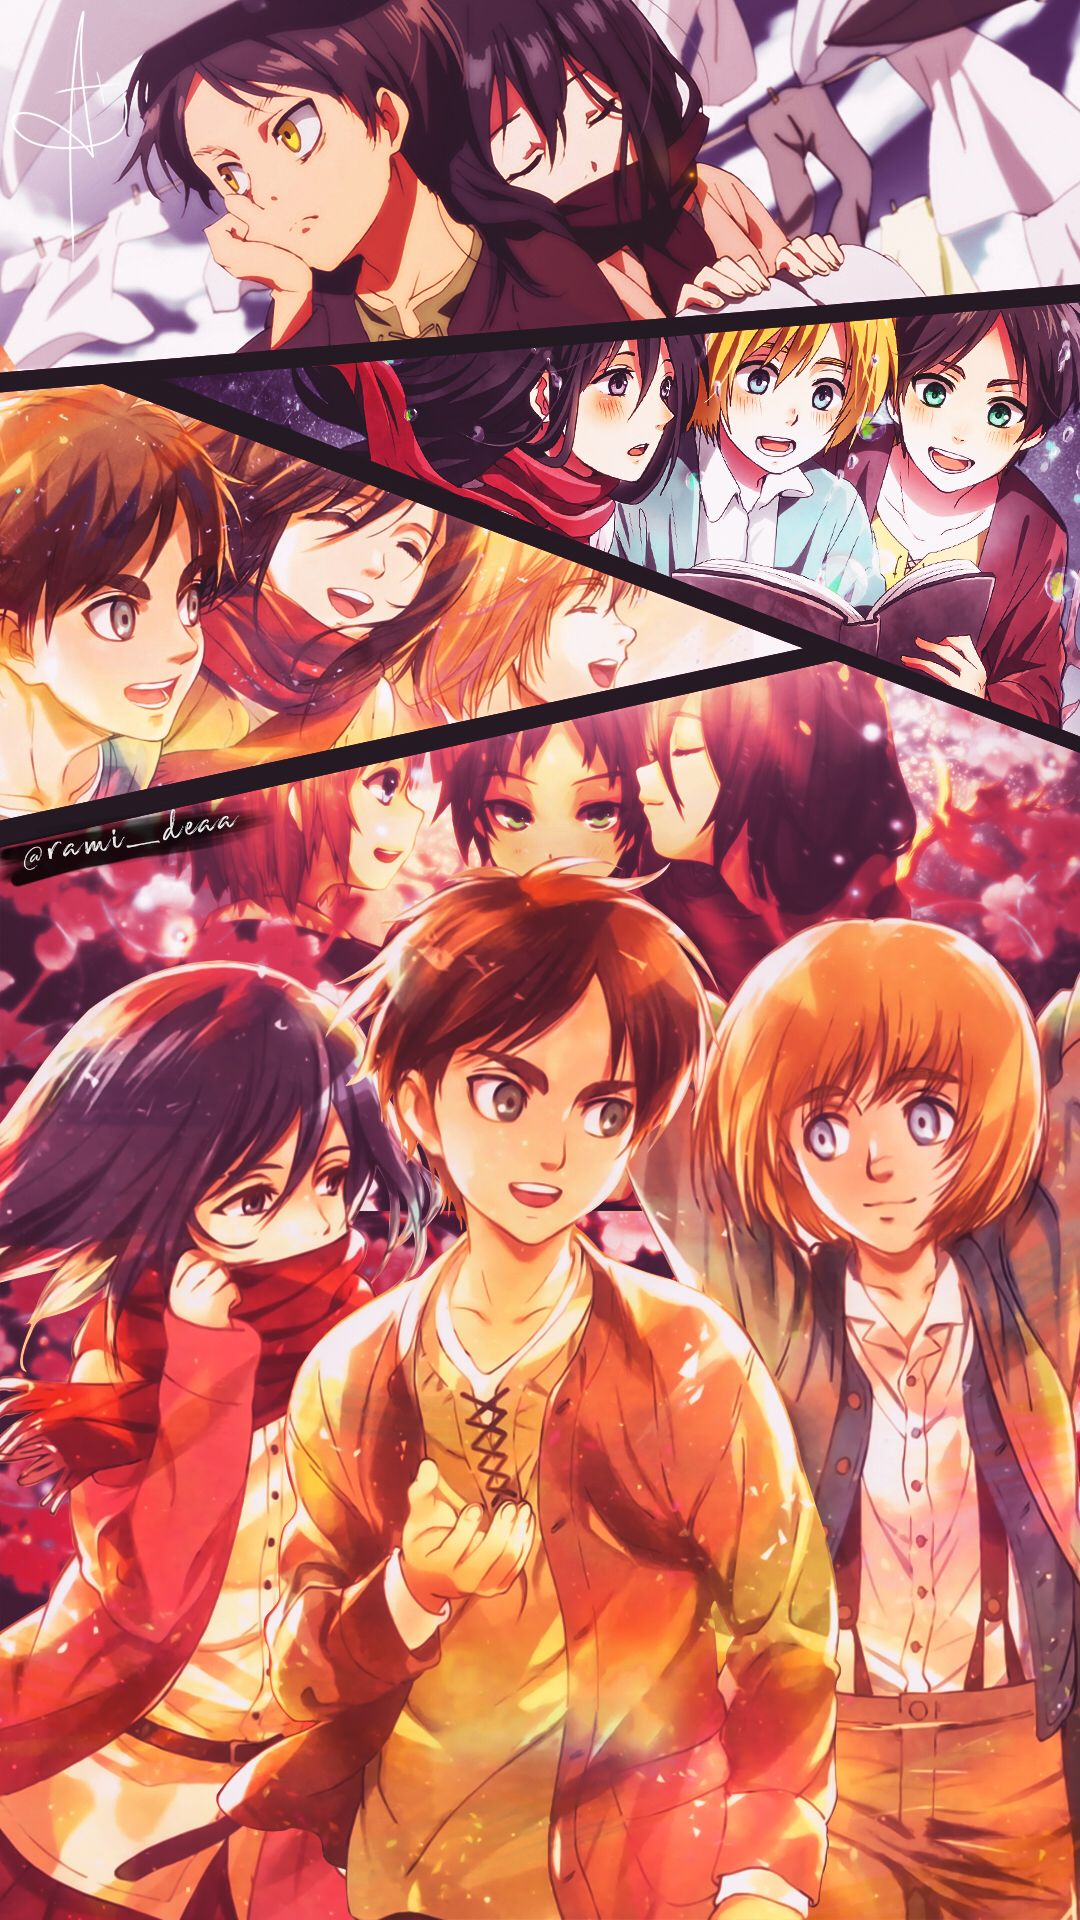 Eren And Mikasa And Armin Attack On Titan Anime Anime Attack On Titan Eren